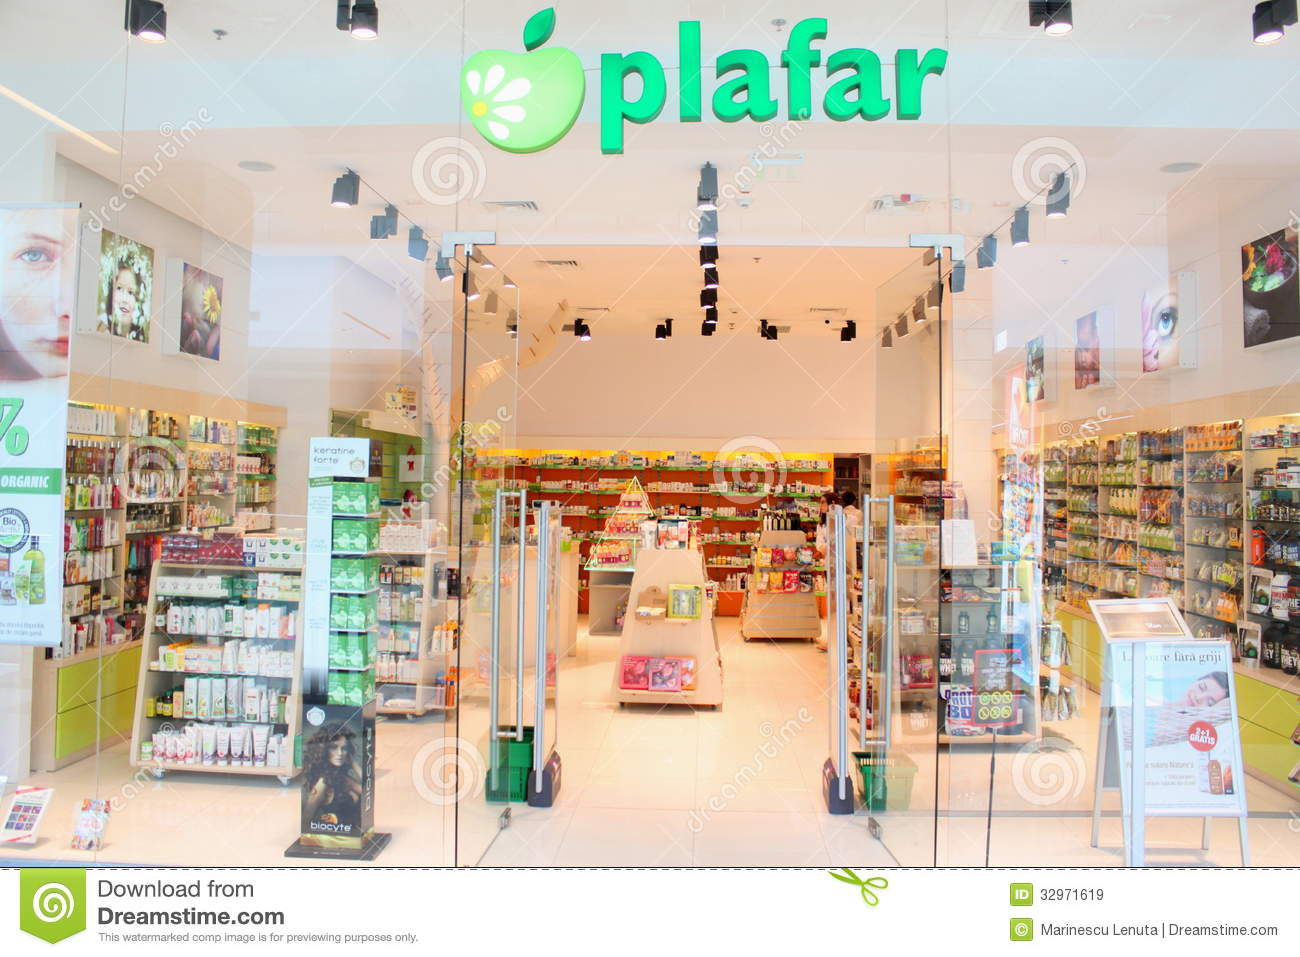 Pharmacy shop plafar in romania shelves with bio and natural